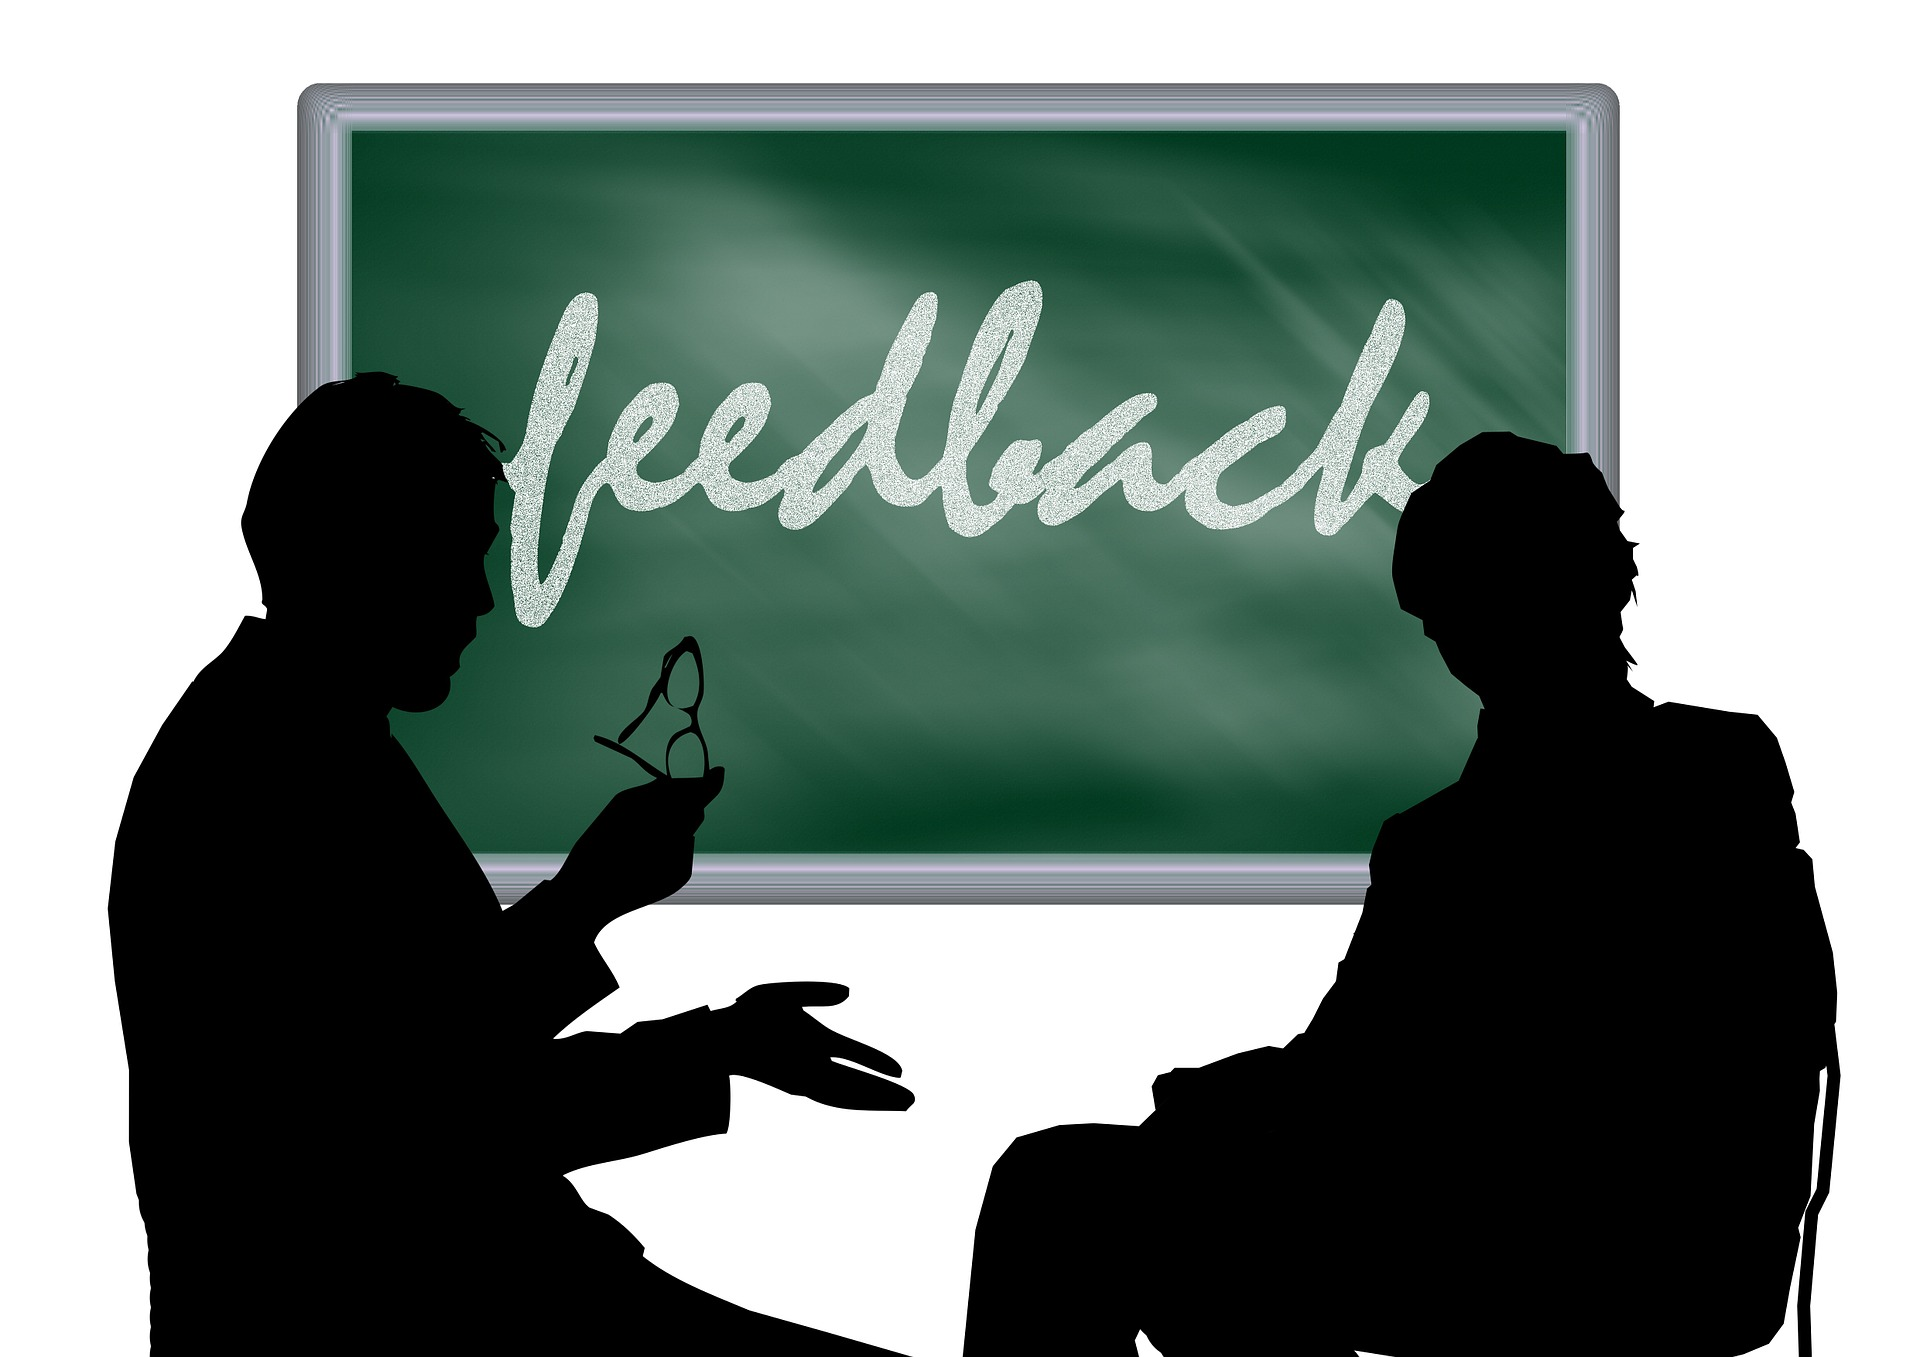 Providing Feedback Groove Management